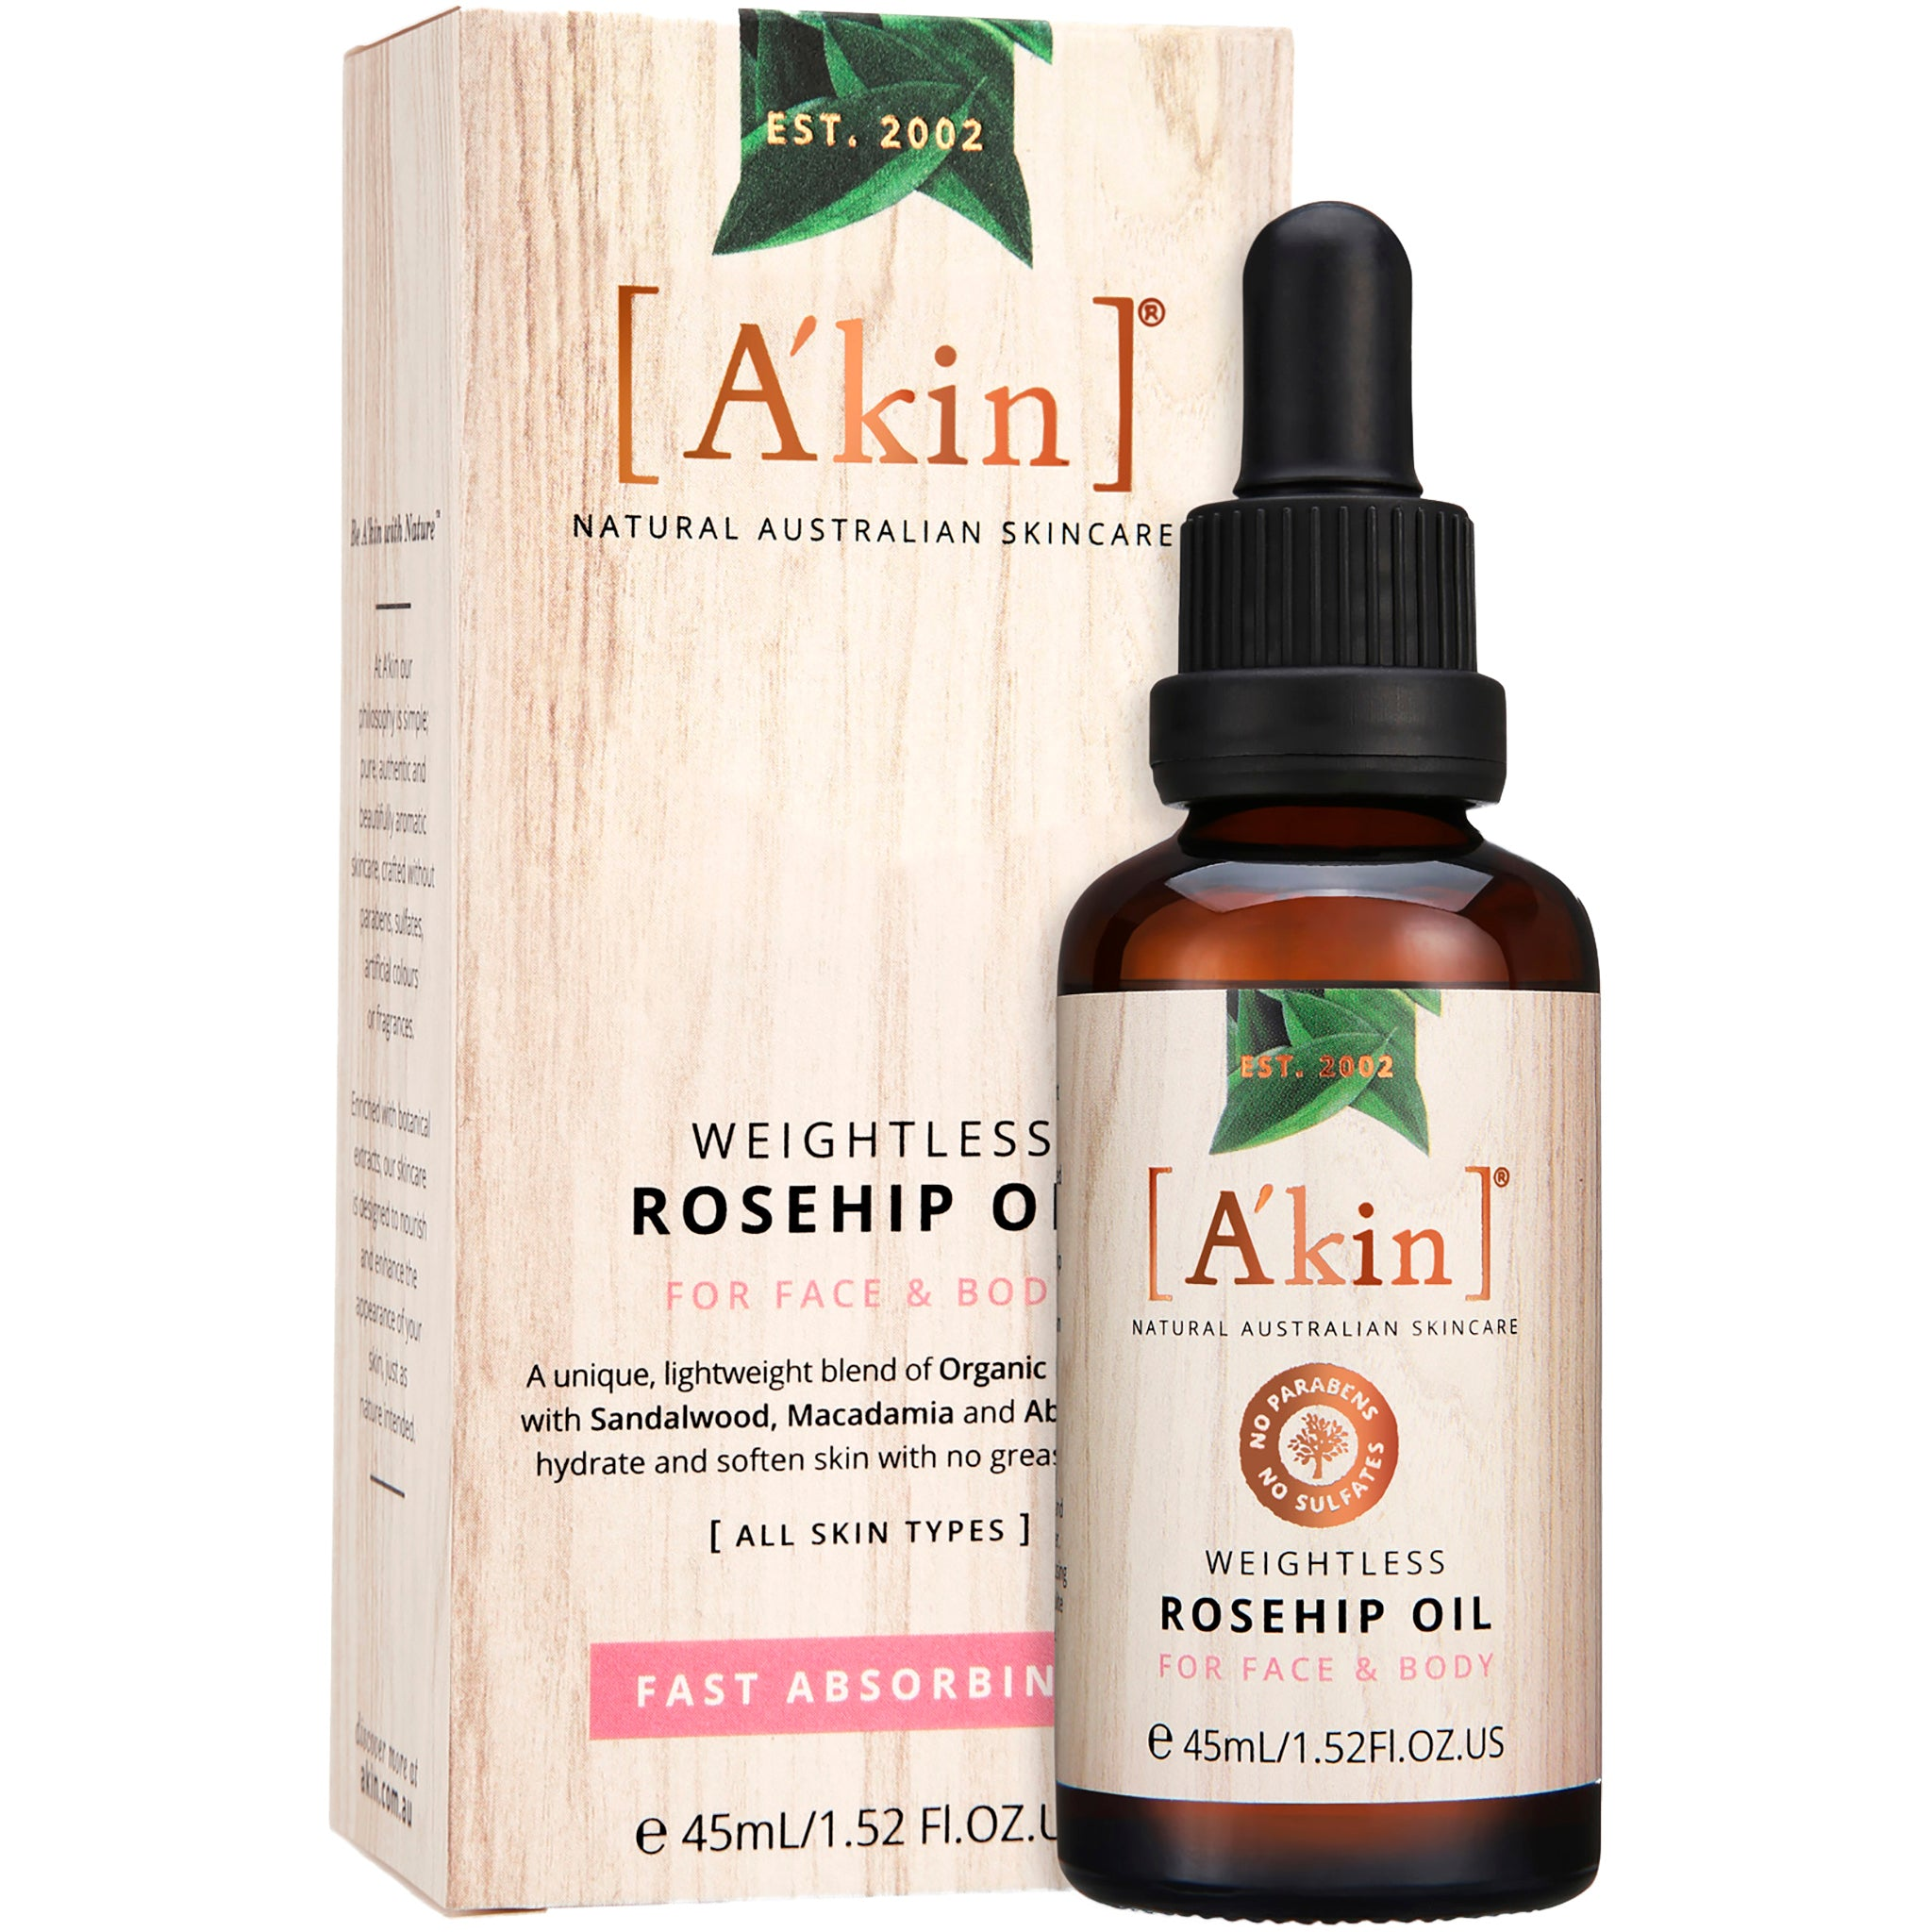 Weightless Rosehip Oil For Face and Body